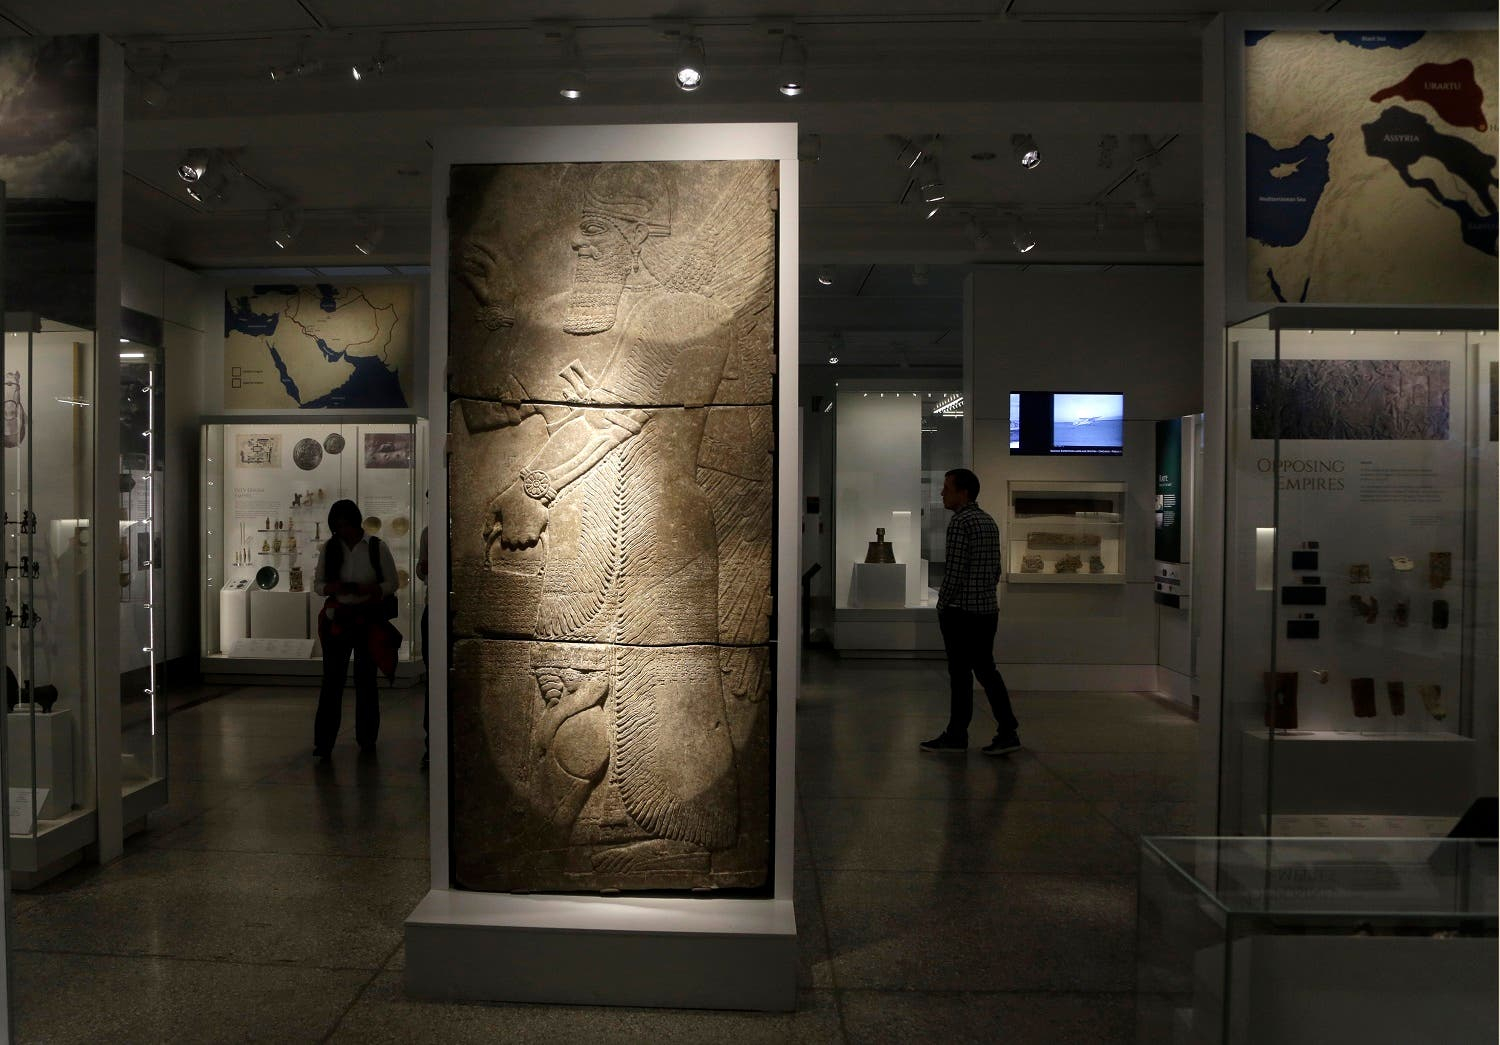 Part of the Middle East gallery is displayed at the Penn Museum in Philadelphia. The University of Pennsylvania Museum of Archaeology and Anthropology is opening the galleries to showcase previously undisplayed items, and is making the artifacts more relatable by adding guides native to those parts of the world. (AP)